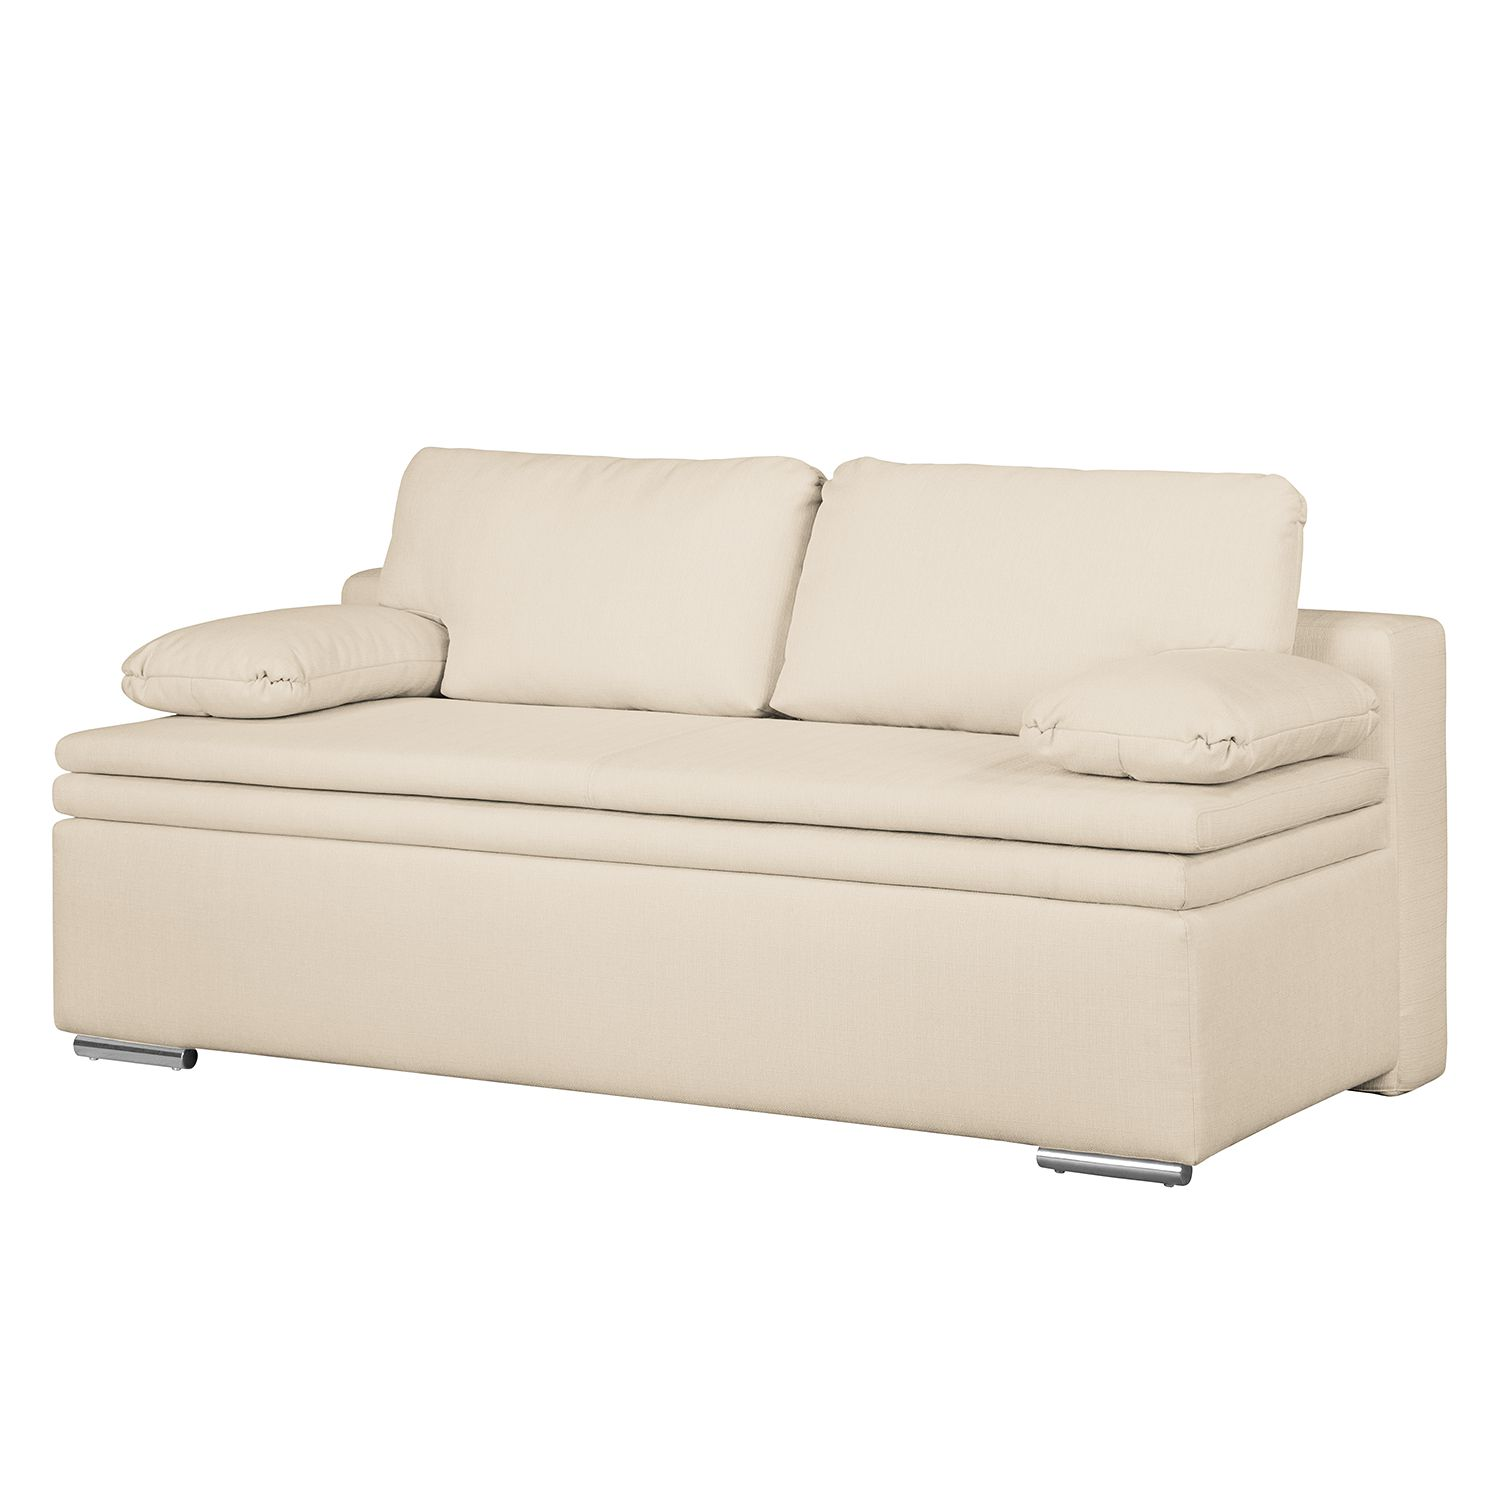 home24 Boxspring-Schlafsofa Goodlow